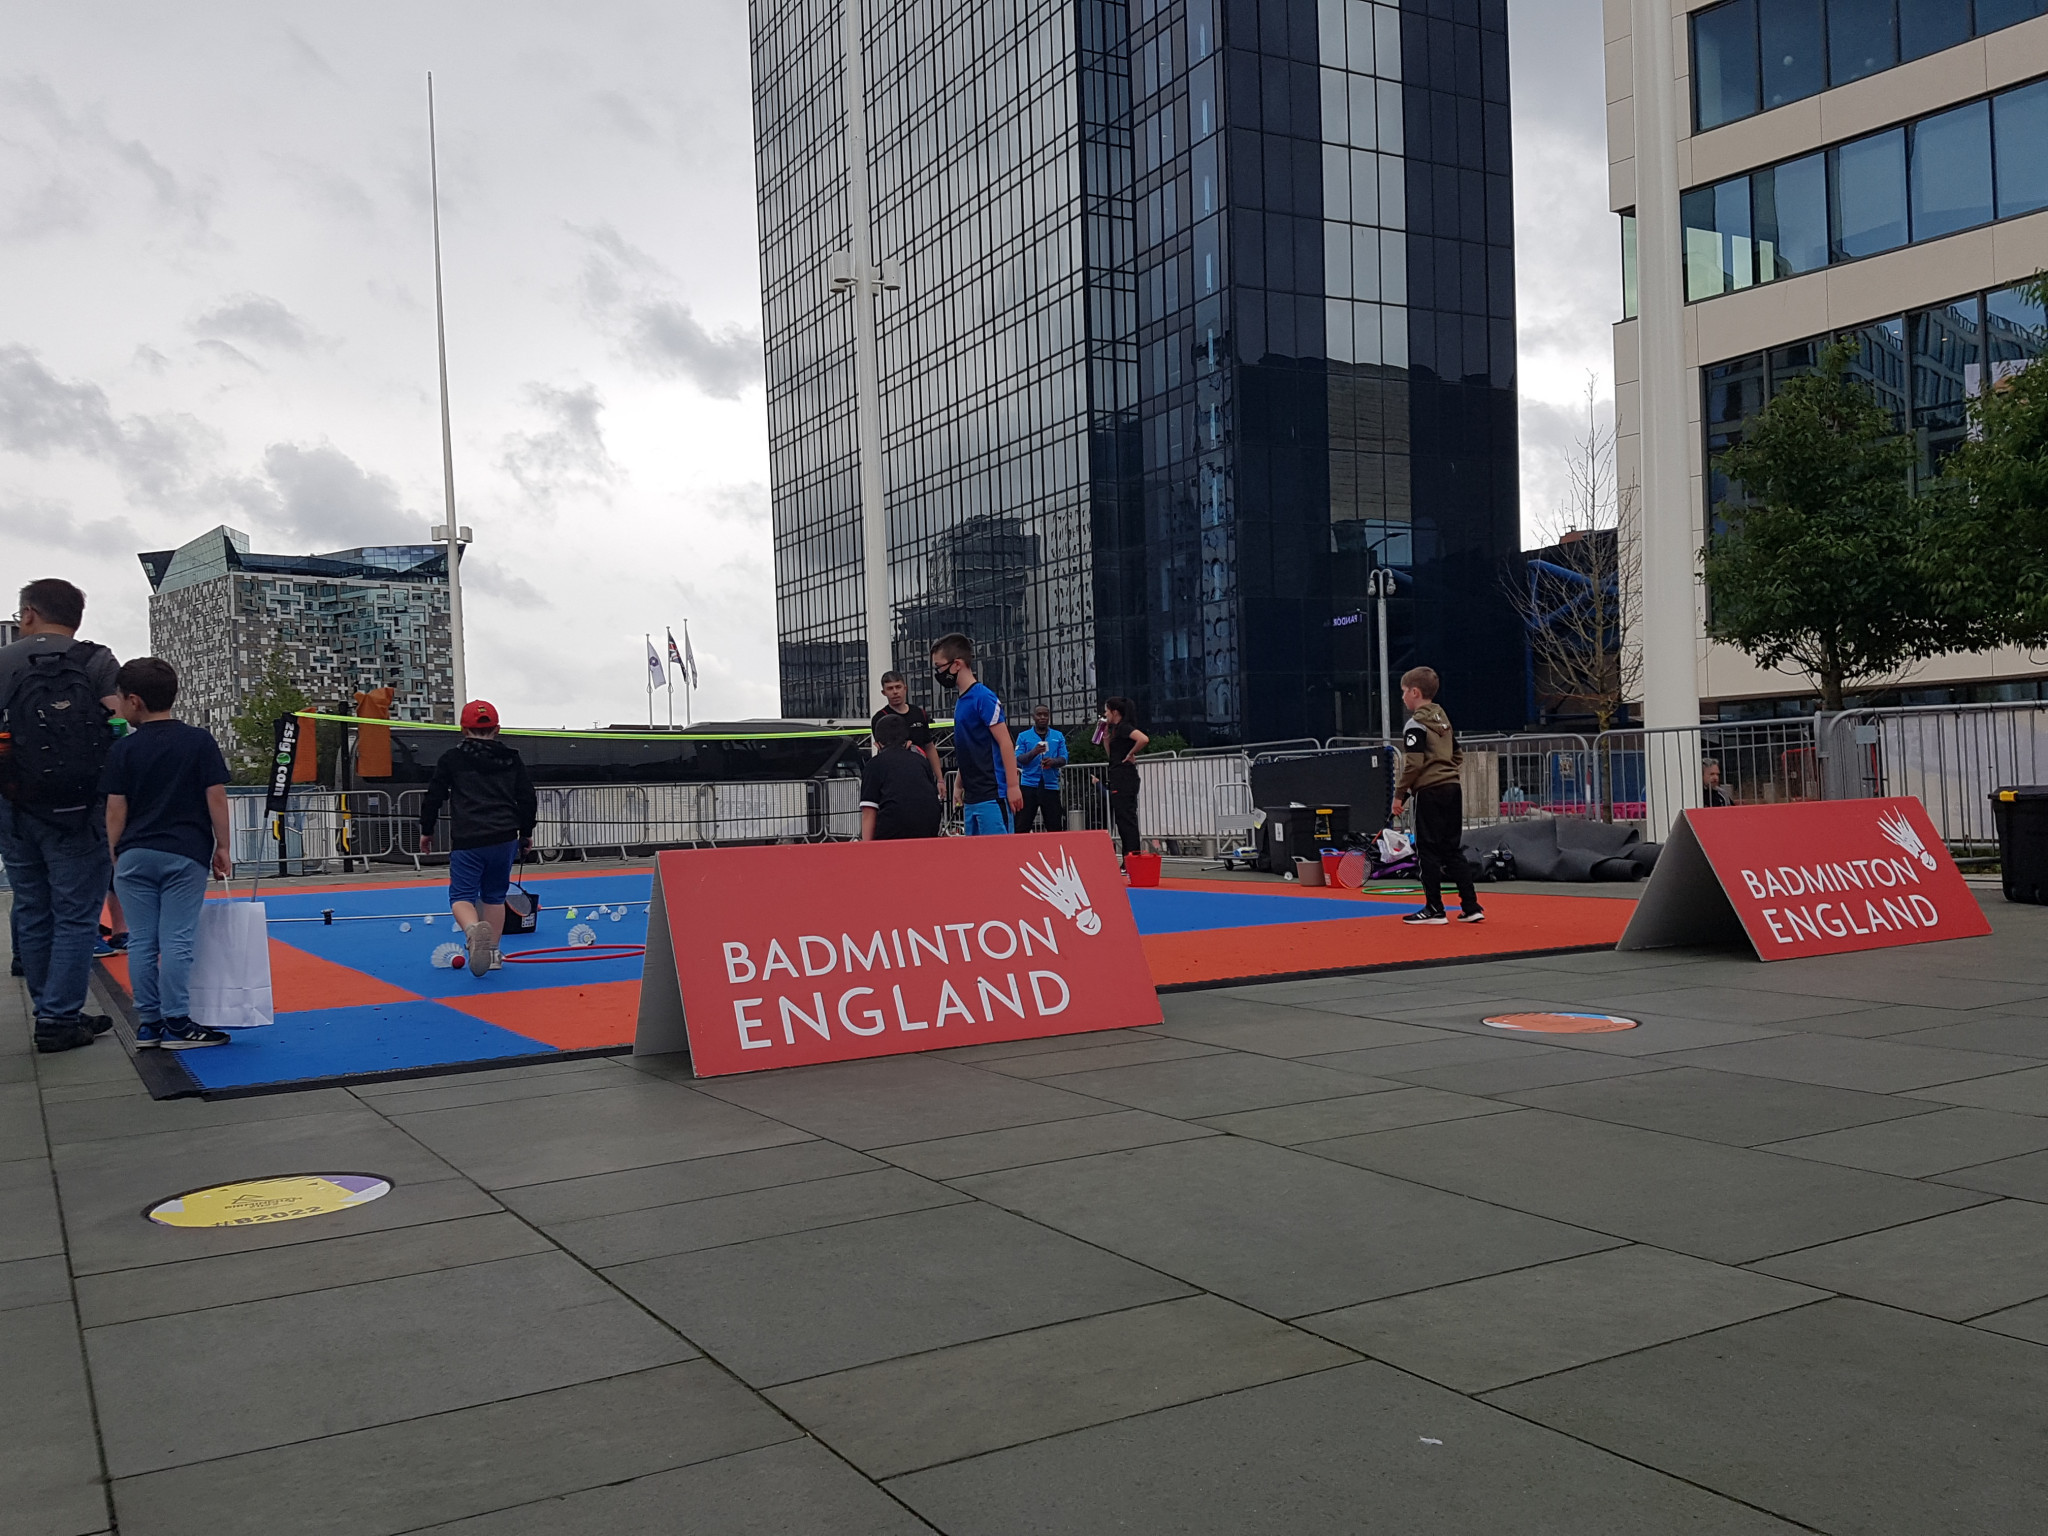 Badminton England was one of many National Federations present in Centenary Square ©ITG